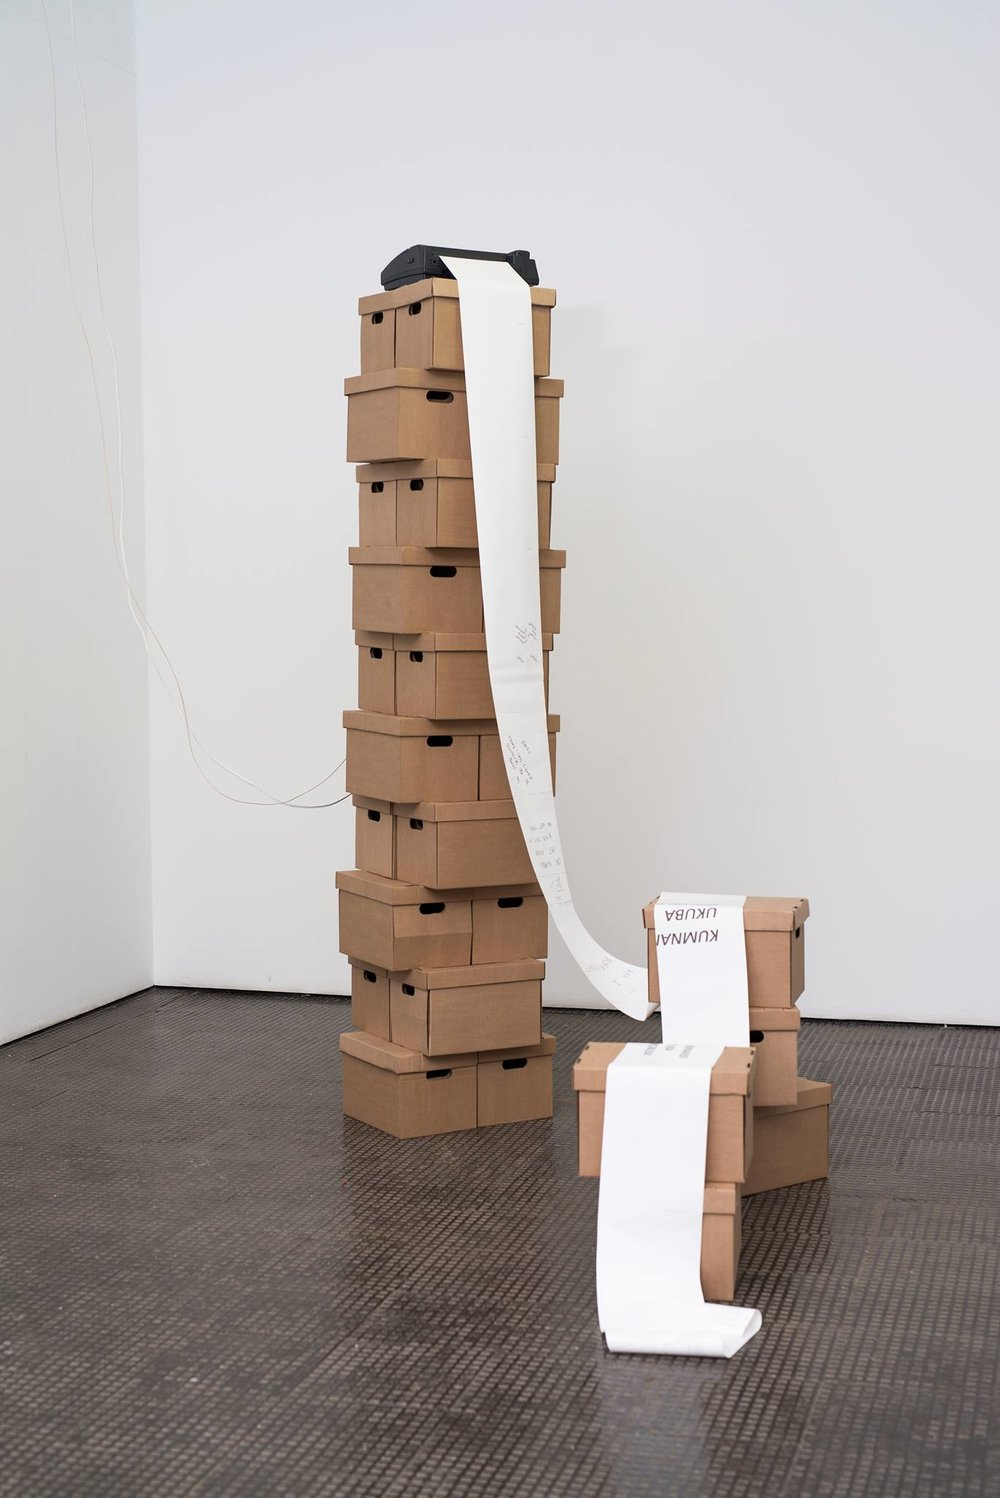 Simnikiwe Buhlungu, A Looooong Ass Message, ya dig?, Installation (fax machine, faxes periodically sent and operated by the artist, archival boxes), variable dimensions, SMAC Gallery, 2018.